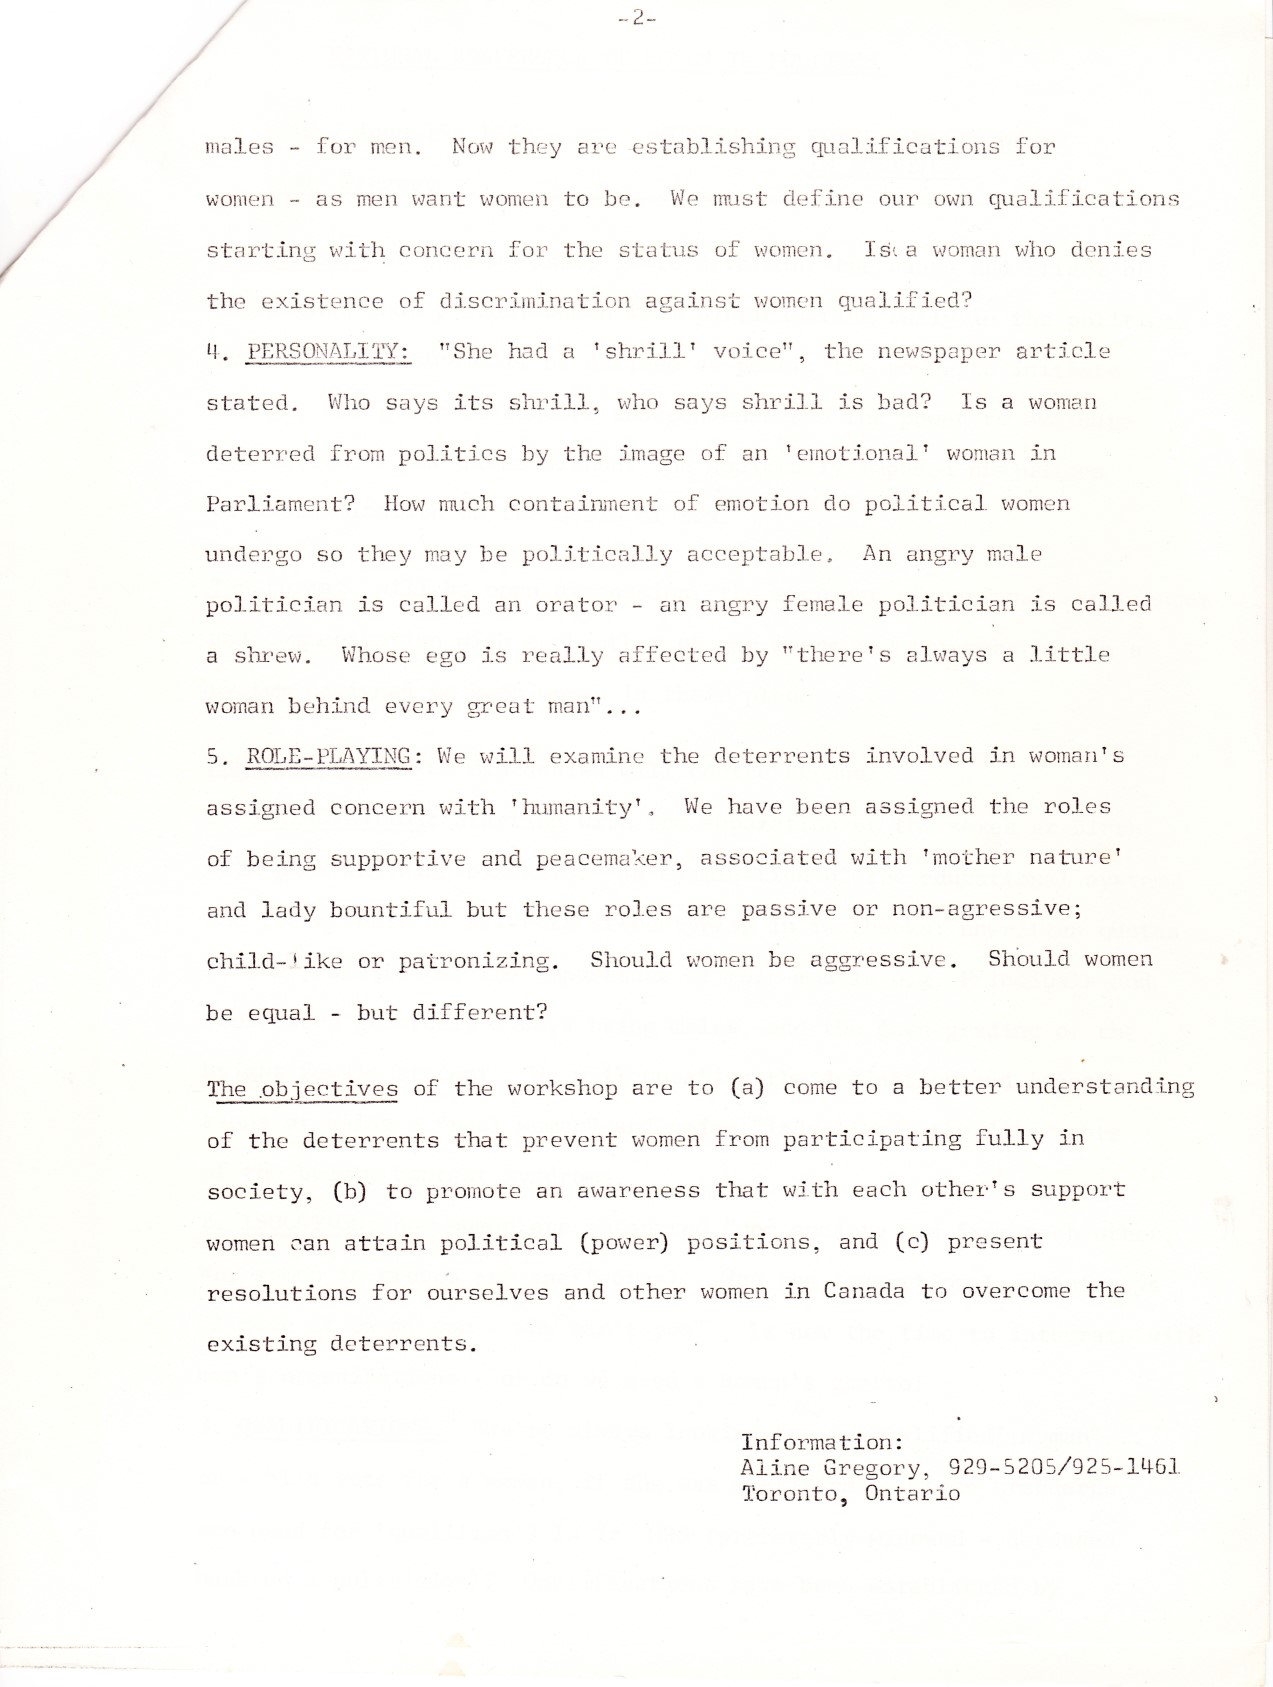 1973 Women In Politics Conference - Workshop Notes: Deterrents to Women in Politics page 2